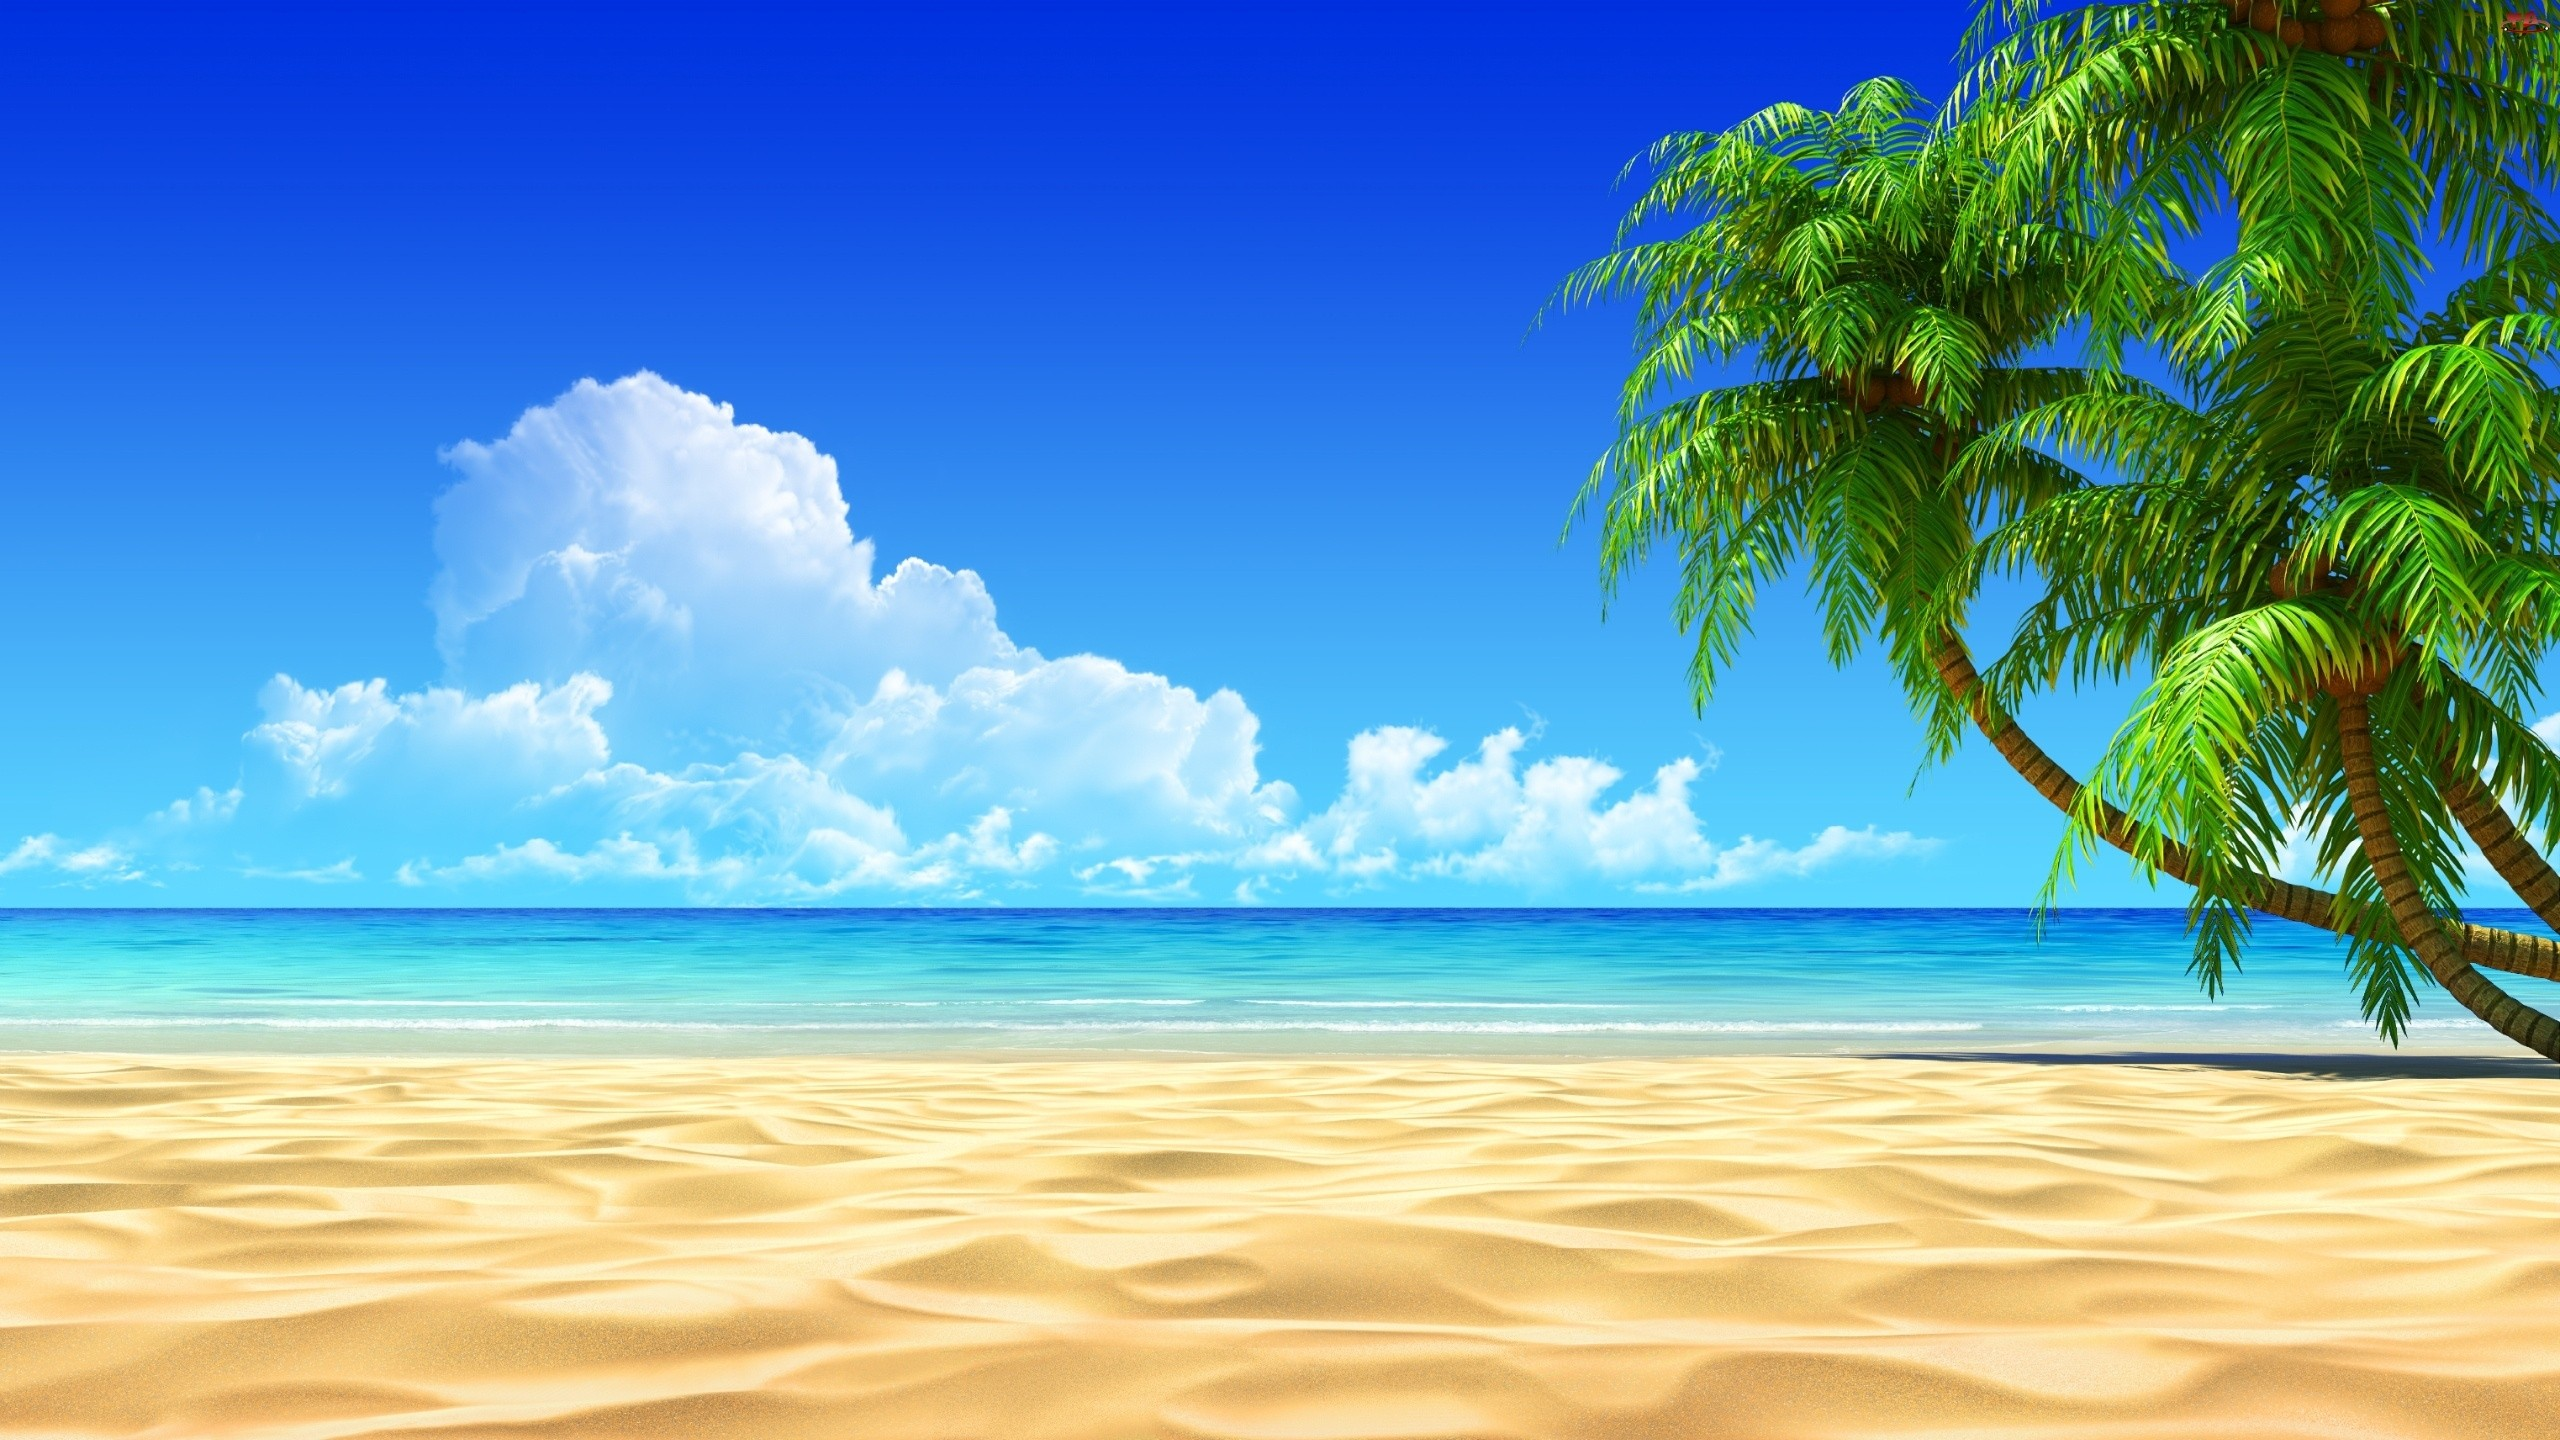 2560x1440 Beach Hd Wallpapers Desktop Background All Wallpaper Px 126 MB Sunset Sea